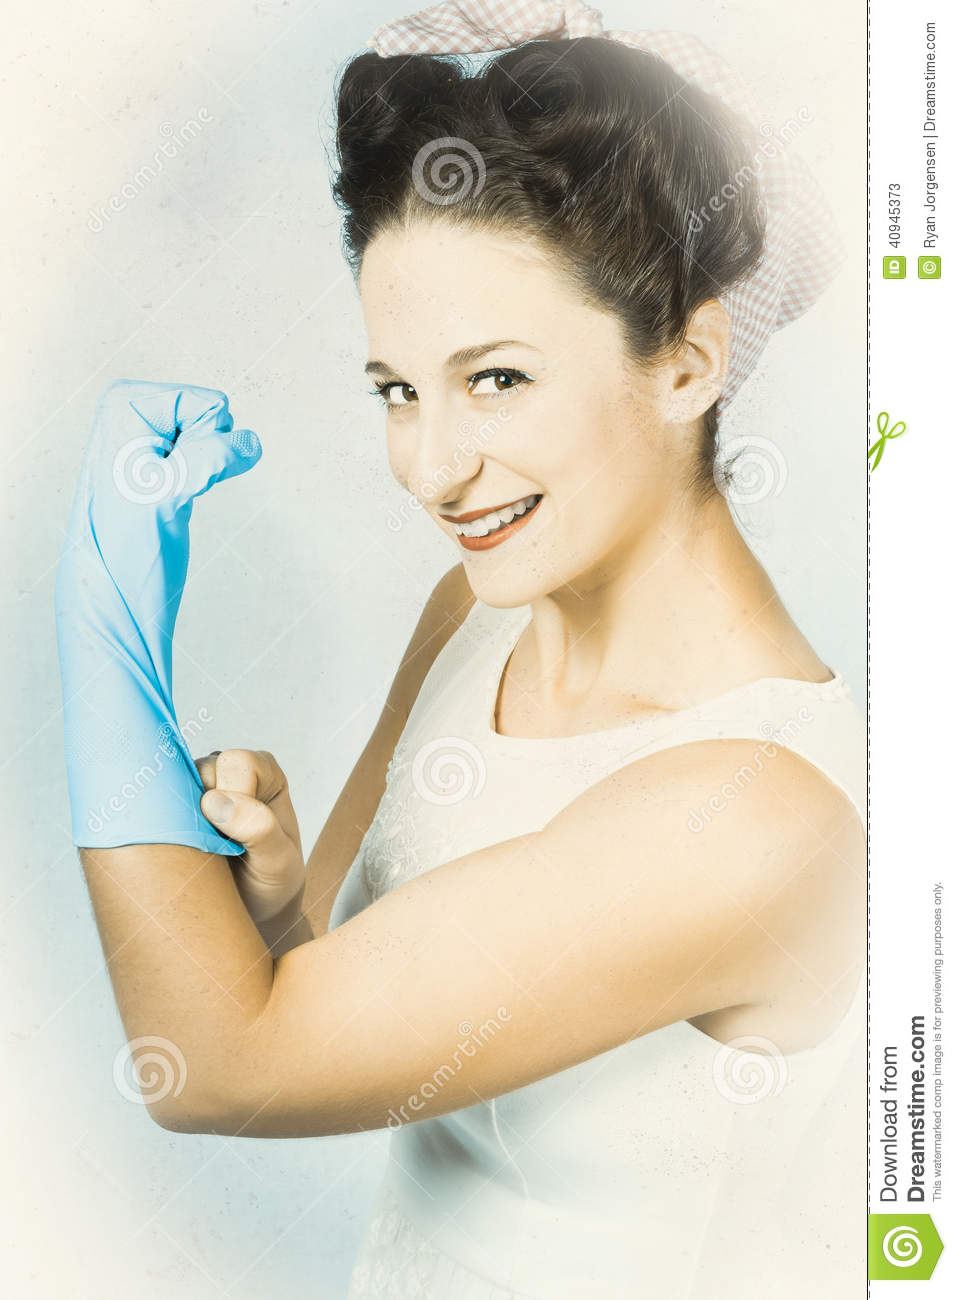 Pinup Housewife Flexing Muscles. Cleaning Strength Stock Photo - Image ...